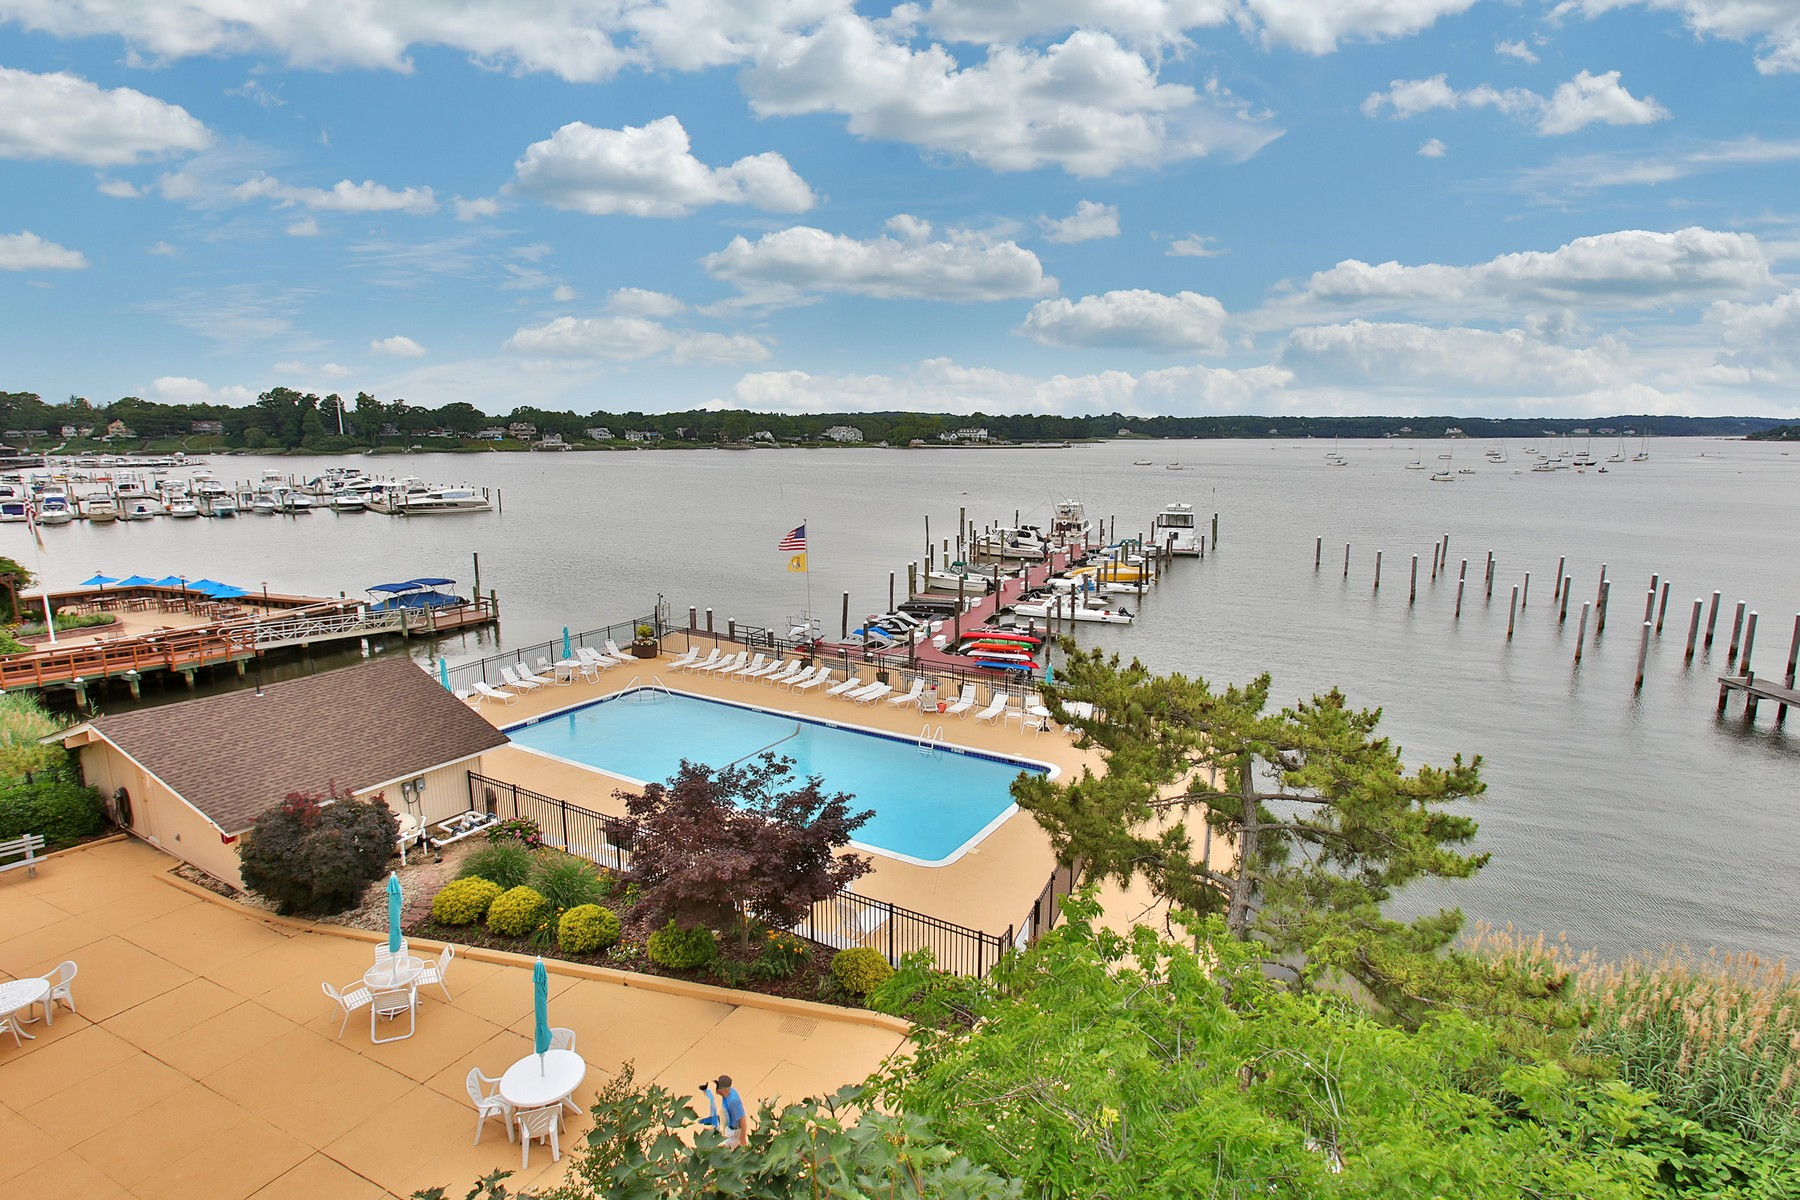 Condominium for Sale at Riverview Towers 28 Riverside Ave 6-J Red Bank, New Jersey 07701 United States